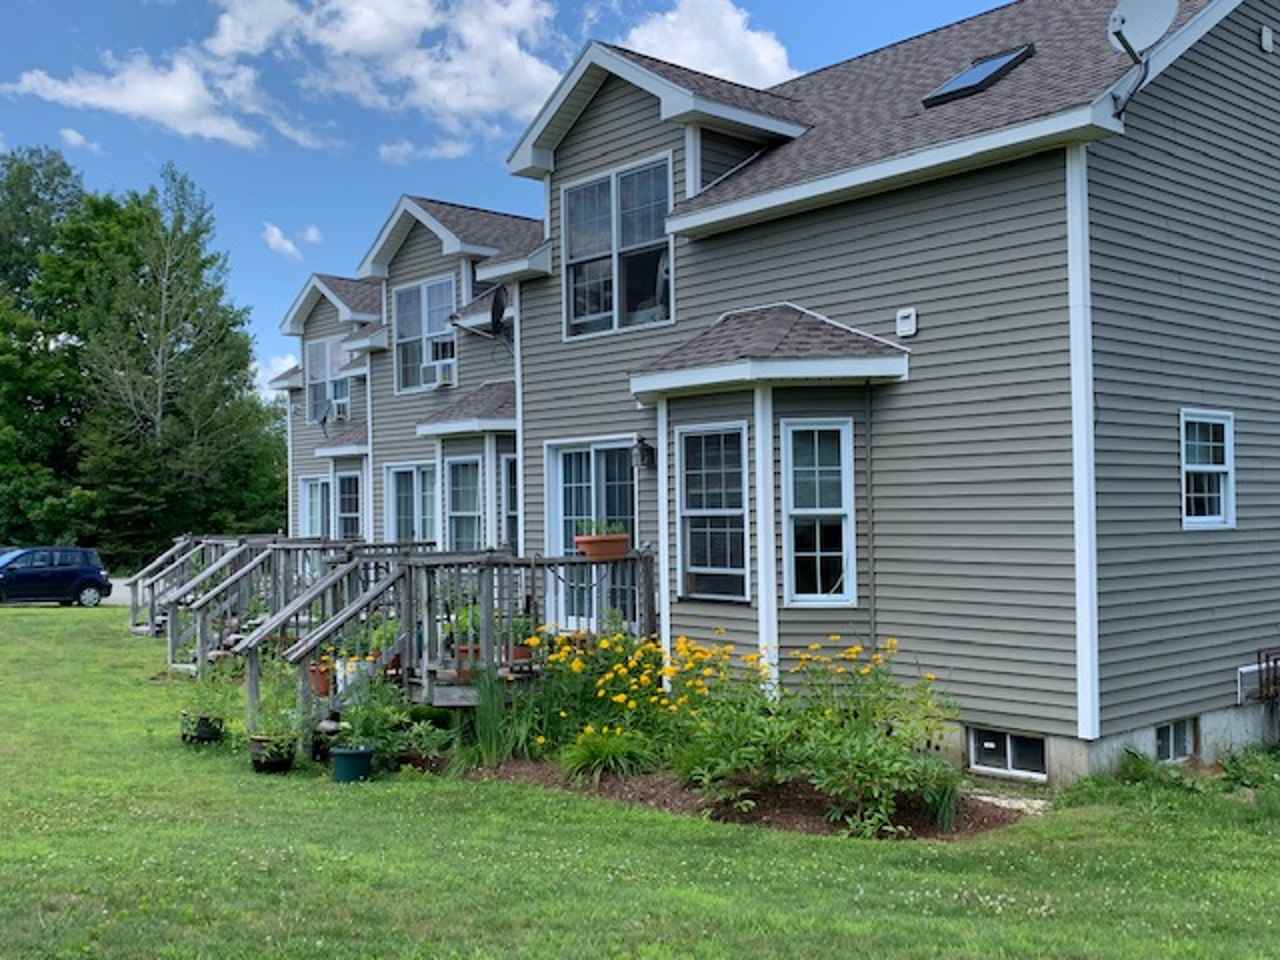 "3 unit Townhouse Condominium, 2BR 1.5 bath each. Full kitchen with spacious island, DR, LR on first floor. Large covered porch and deck off rear to lawn area. each unit has flower gardens front and back. Full insulated basement. All units are currently rented with annual leases in effect. 5 minutes to Smugglers' Notch Resort, 45 minutes to Jay Peak Resort. 30 minutes to St Albans, and 45 minutes to Essex Jct, and Global Foundries Sited on individual lot ideal for ""owner occupied"" financing. Appraisal from August 2018 available for review. Built in 1998. Propane heat, New Septic 2016. new roofs 2018. Near 100% rental occupancy. Interior trim and doors are natural wood."